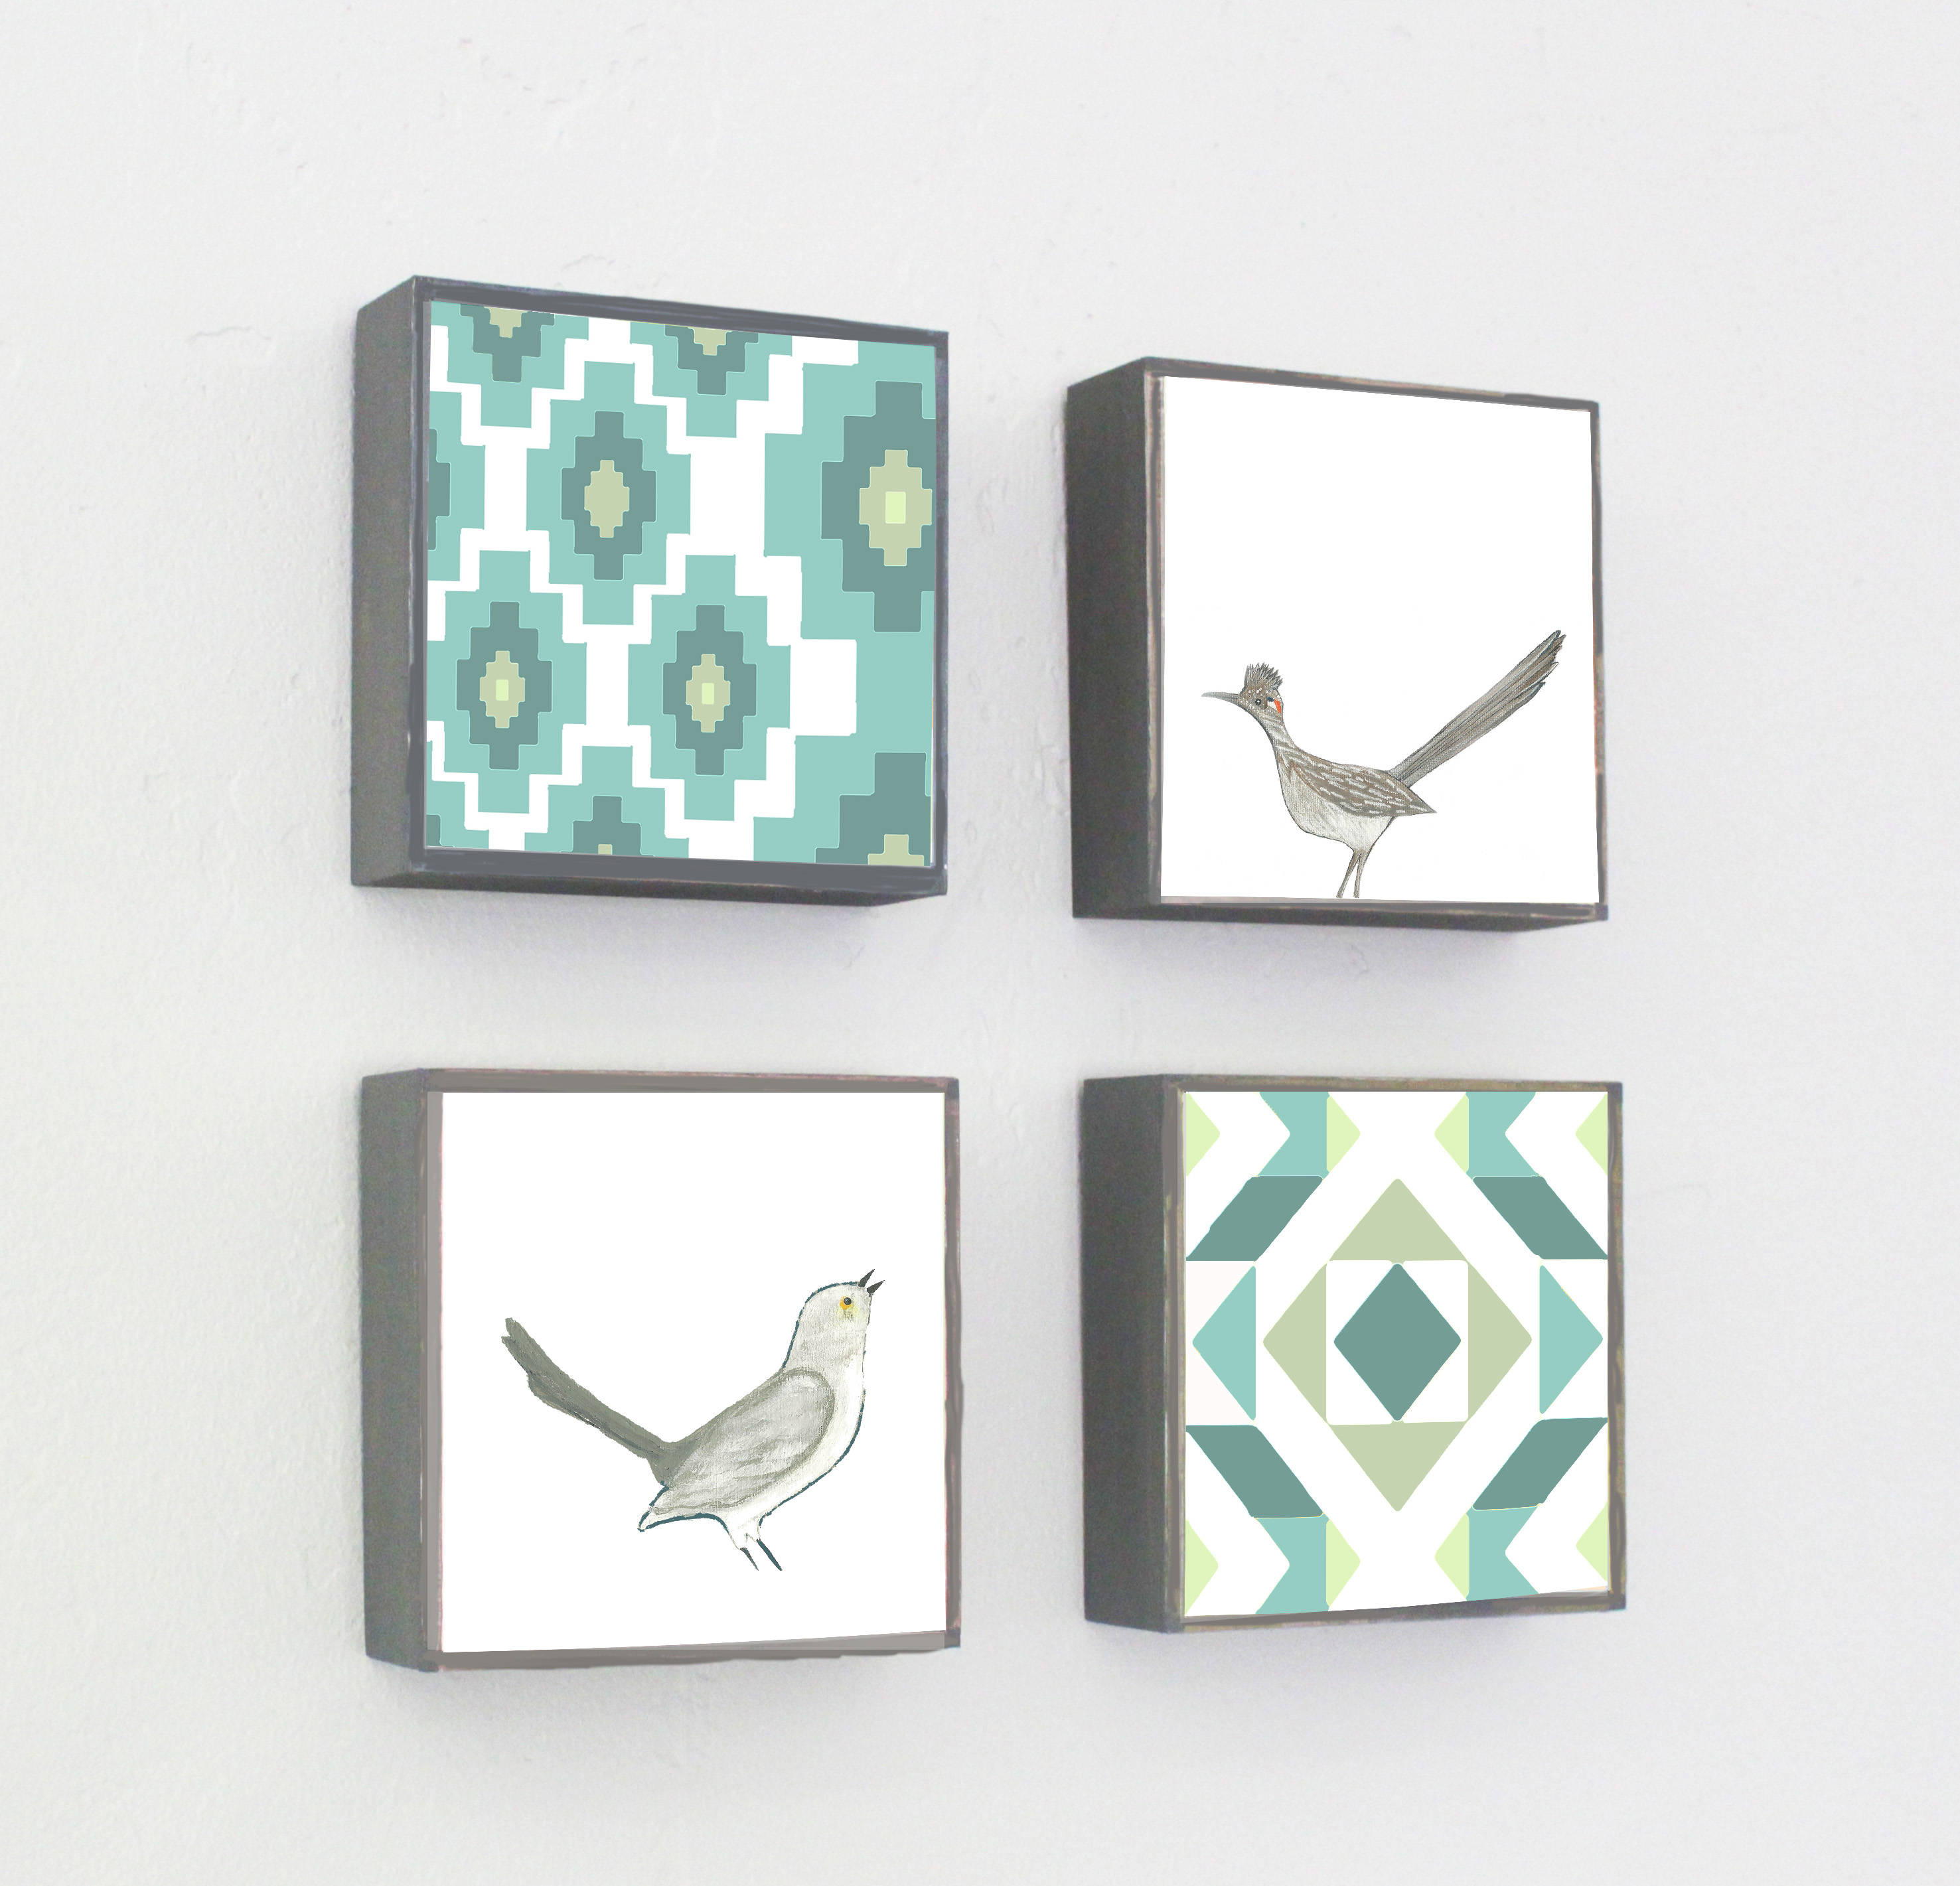 Wall Tile Grouping by Red Tile Studio